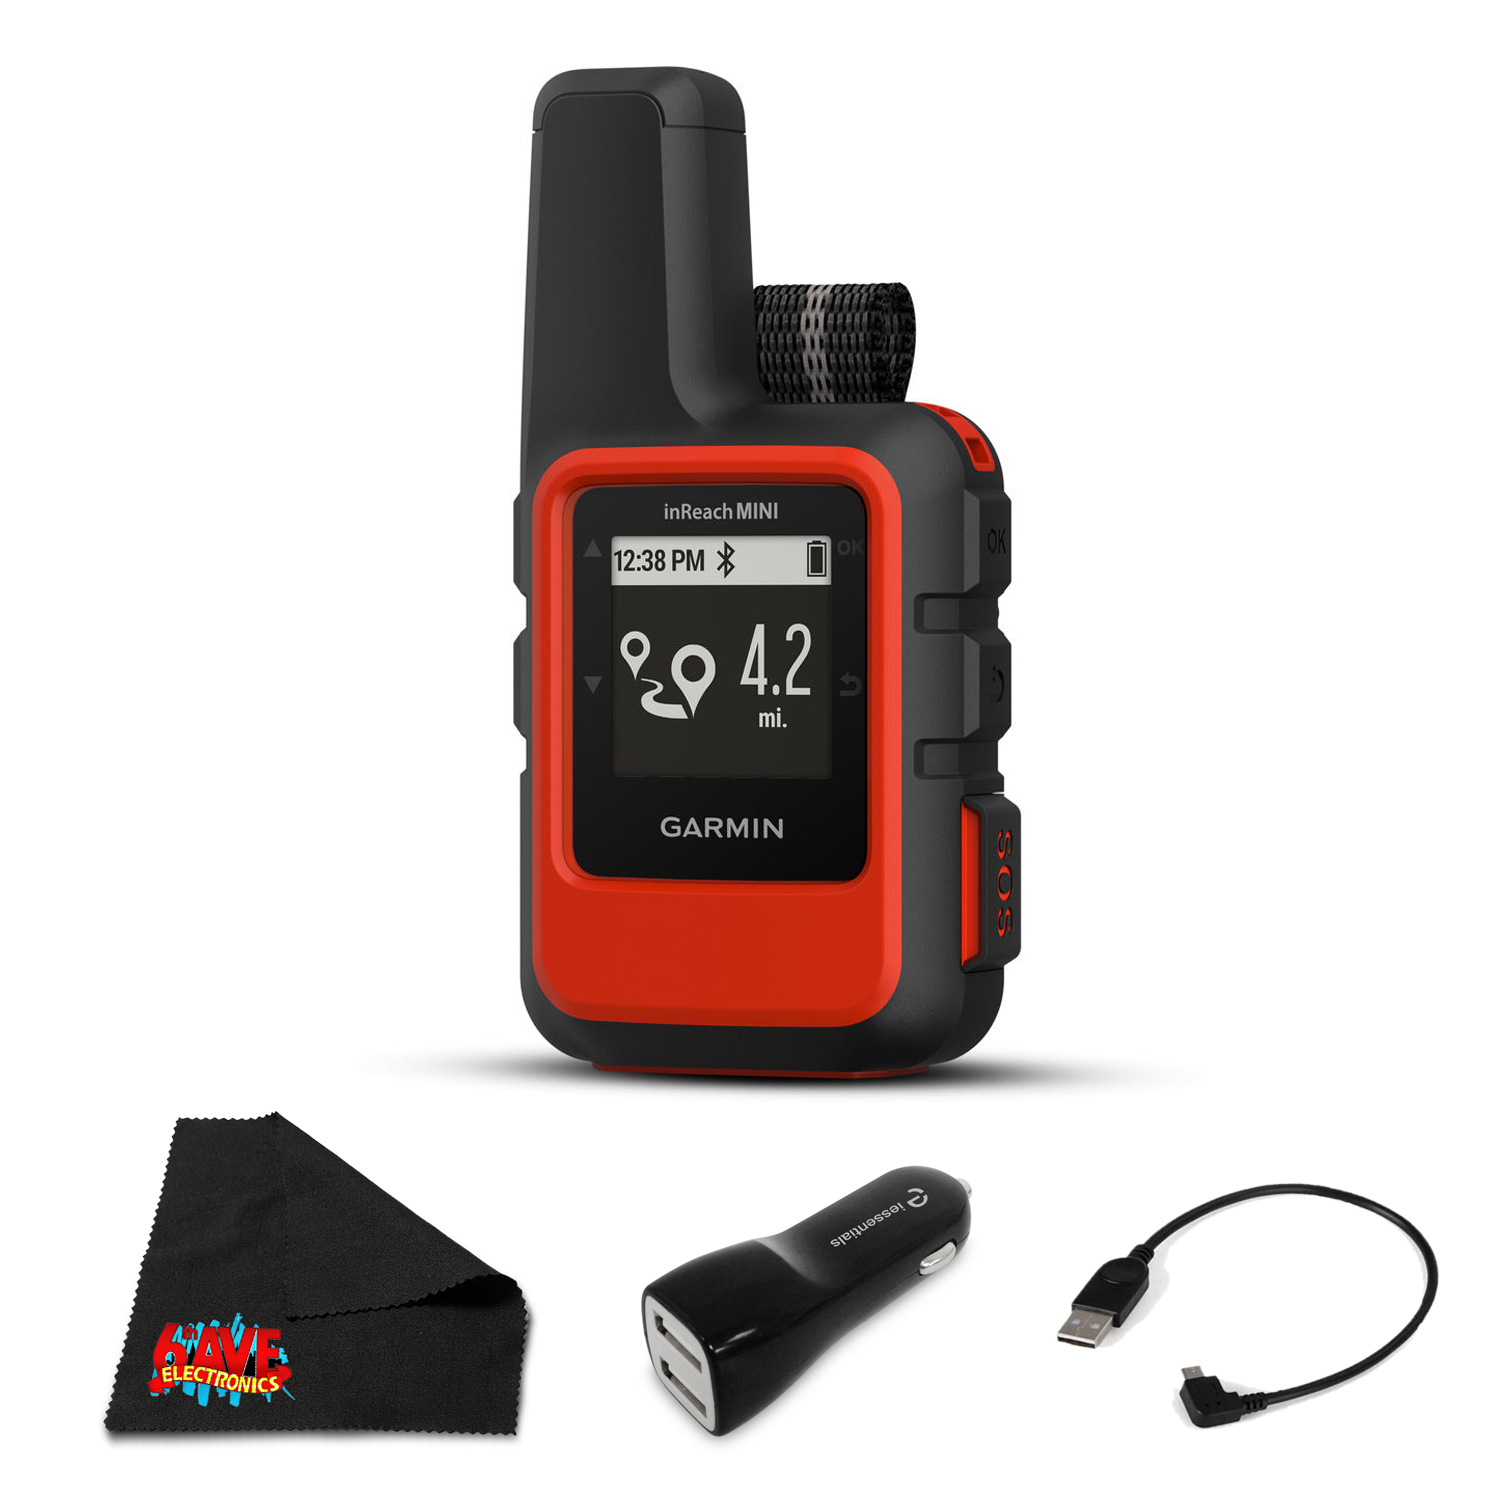 Garmin inReach Mini Satellite Communicator (Orange) Hiking GPS (Satellite Subscription Required) - Bundle with 1 Year Extended Warranty + Pentax 10x30 PCF CW Binoculars